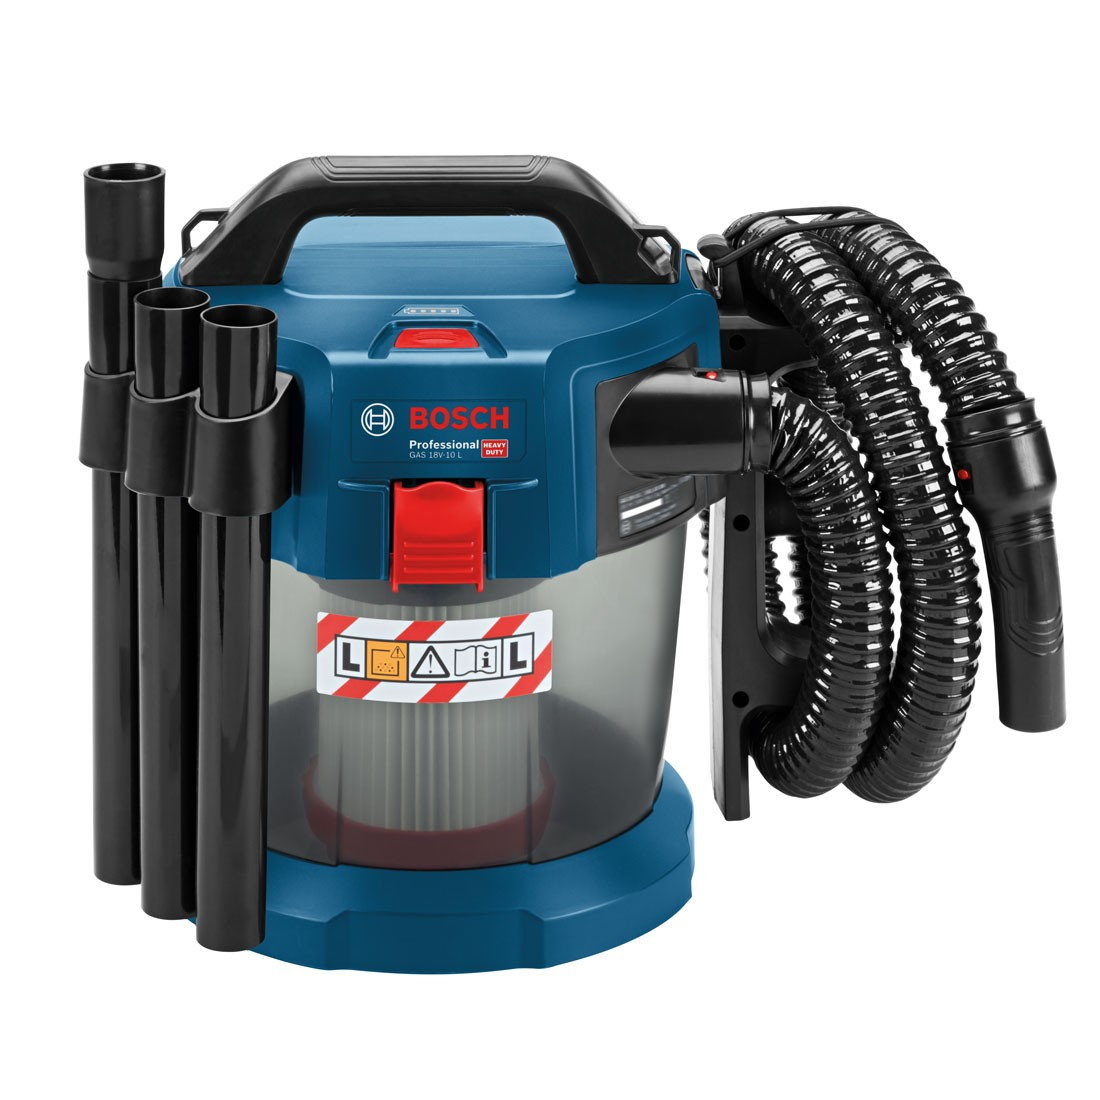 BOSCH CORDLESS DUST EXTRACTOR VACUUM GAS18V-10 | It is compatible with the Bosch Click & Clean System as well as with all Bosch Professional 18 V batteries and chargers (Professional 18V System). | toolforce.ie